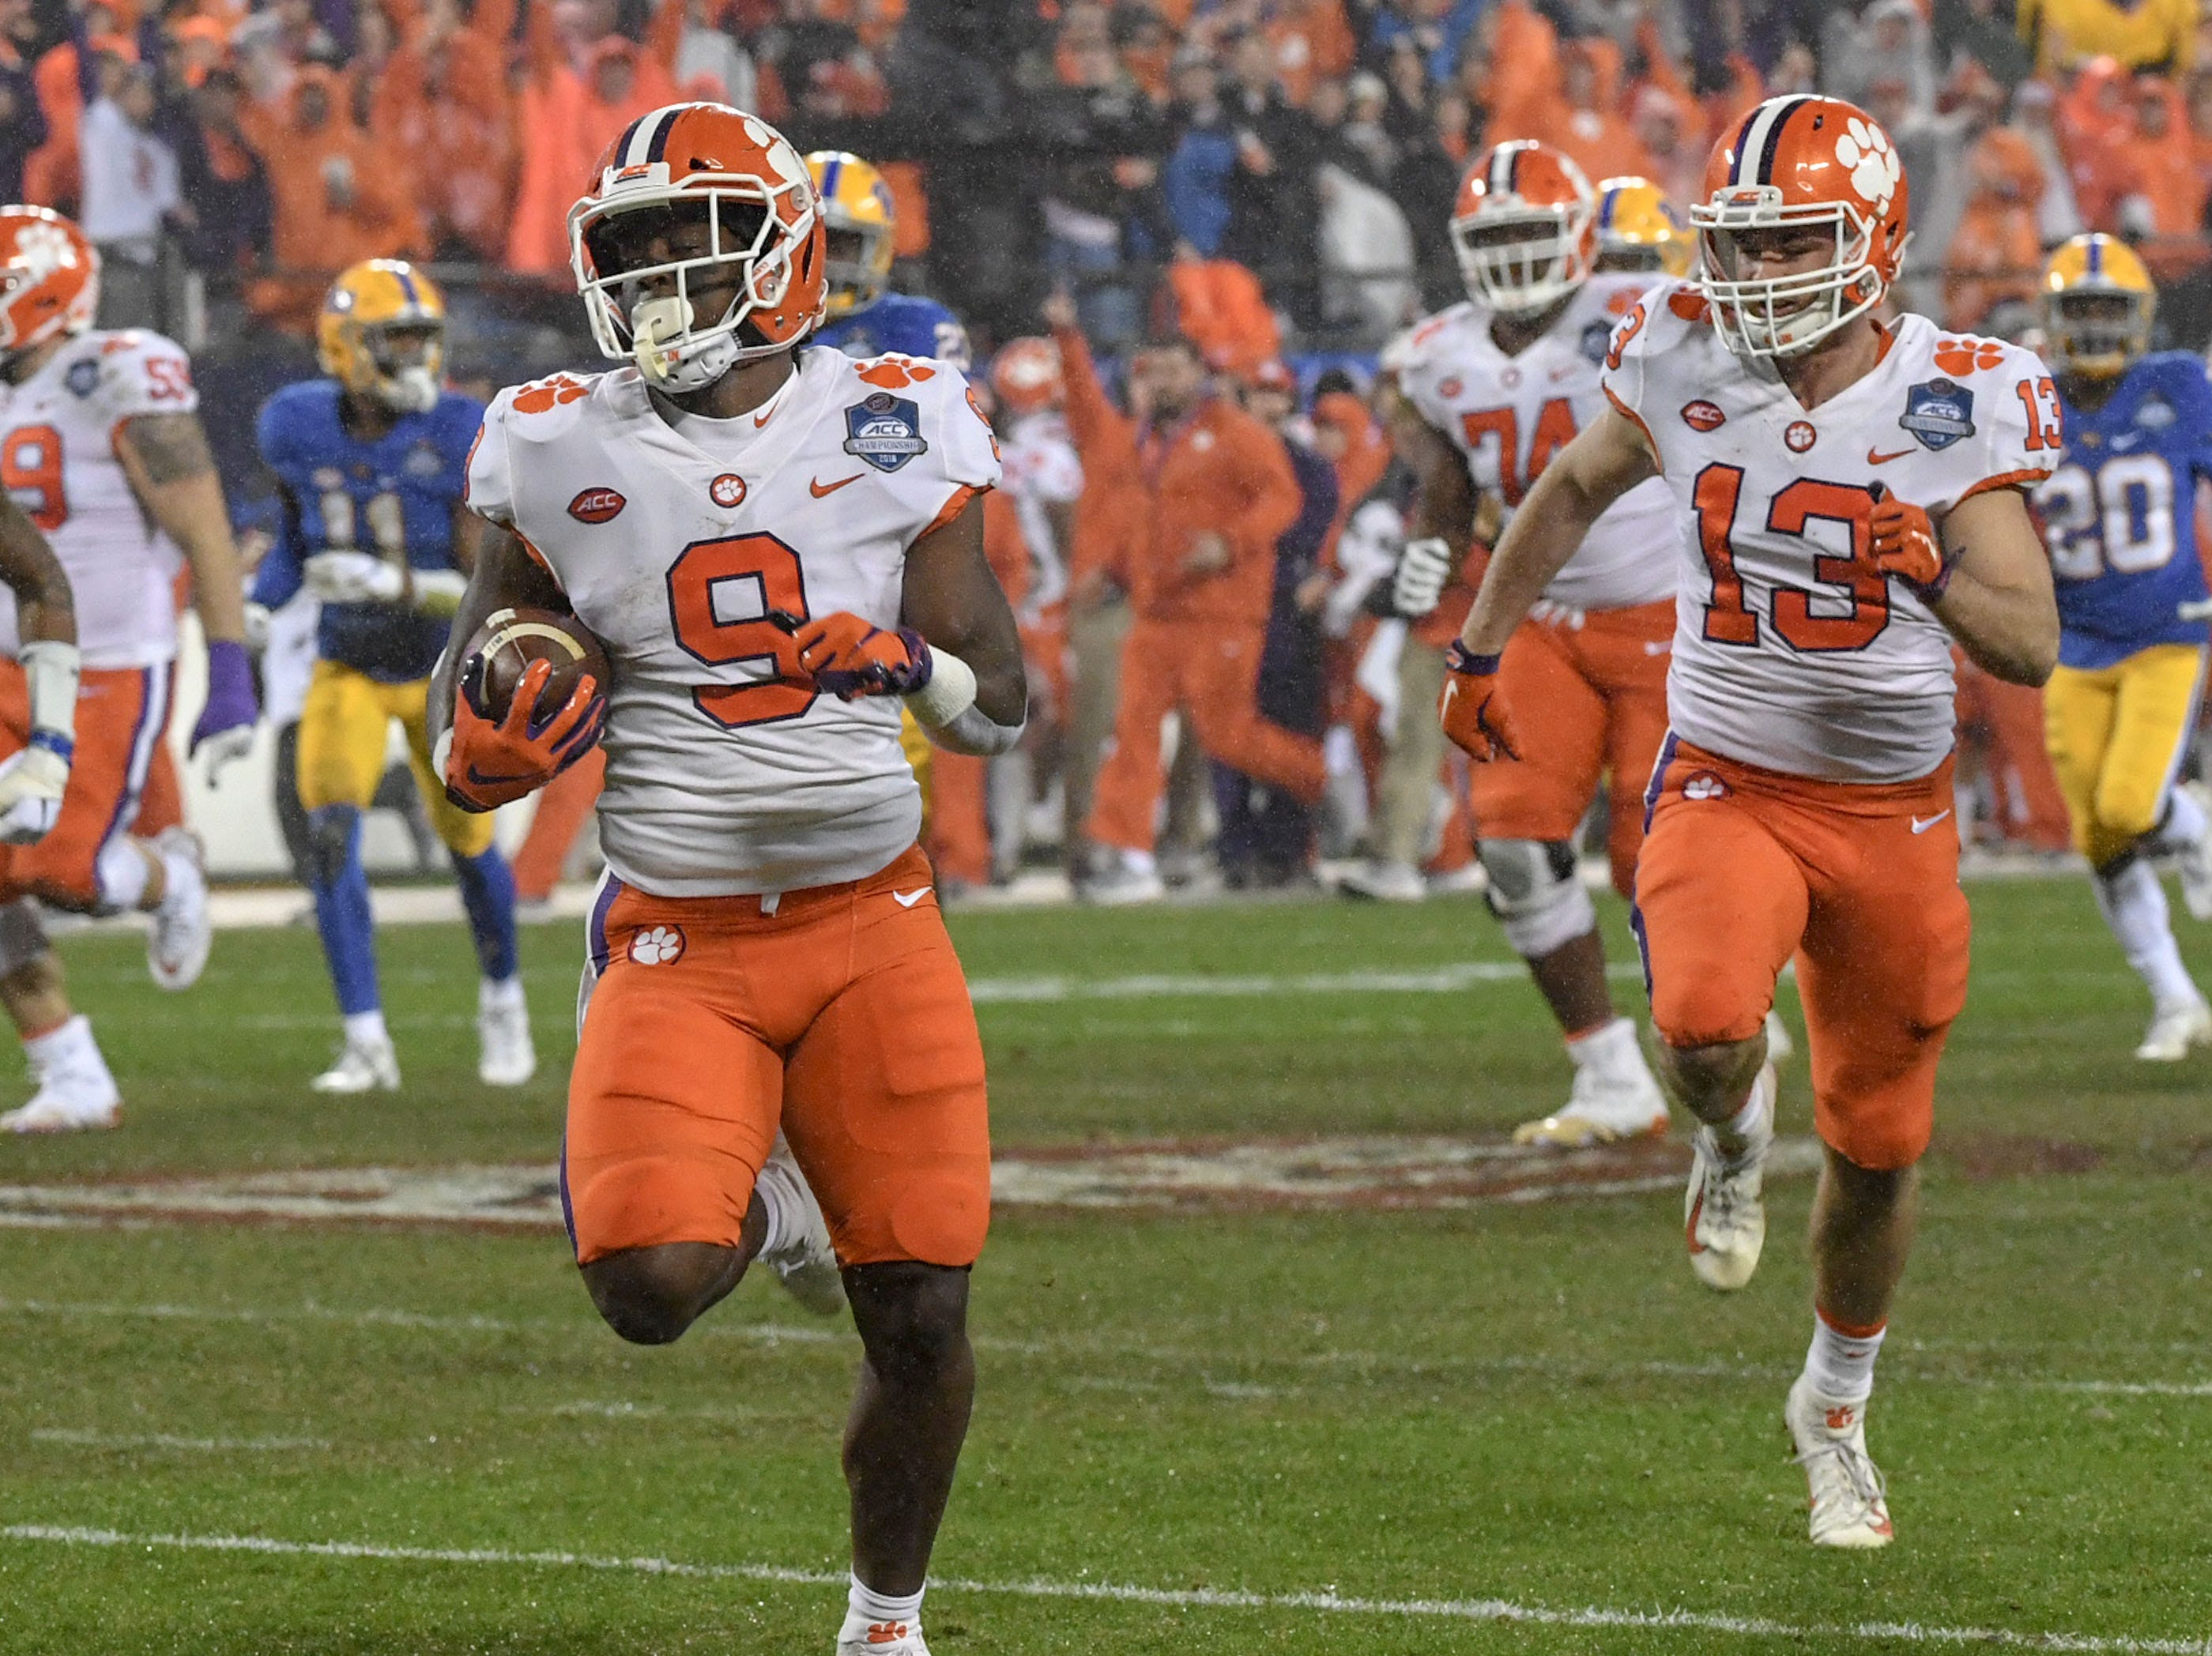 Clemson running back Travis Etienne (9) runs the first play from scrimmage 75 yards for a touchdown with wide receiver Hunter Renfrow (13) nearby, against Pitt during the first quarter of the Dr. Pepper ACC football championship at Bank of America Stadium in Charlotte, N.C. on Saturday, December 1, 2018.